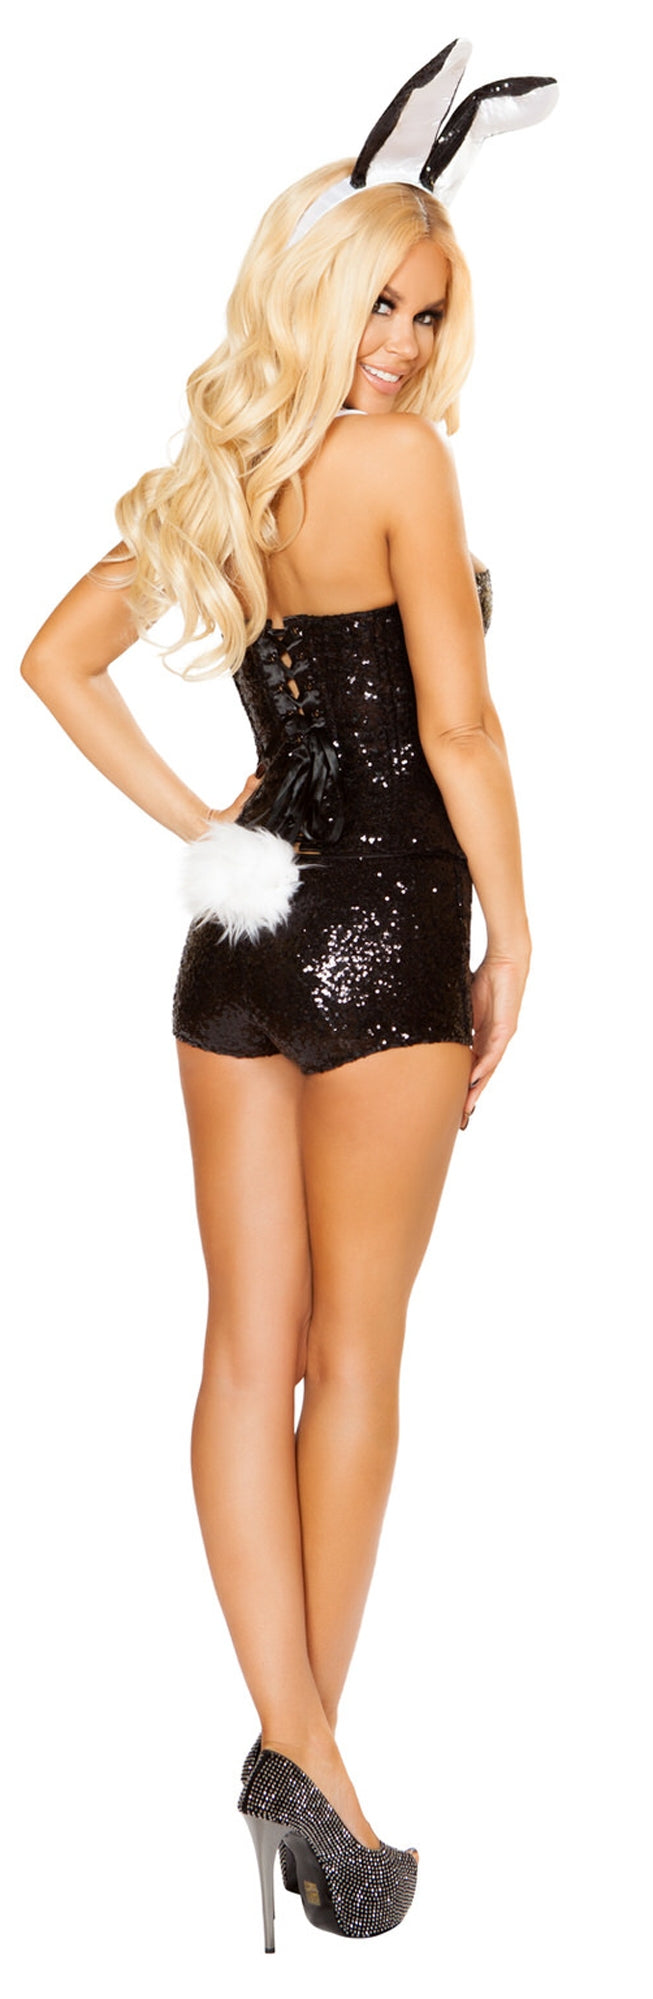 RM-10119 Bunny costume back